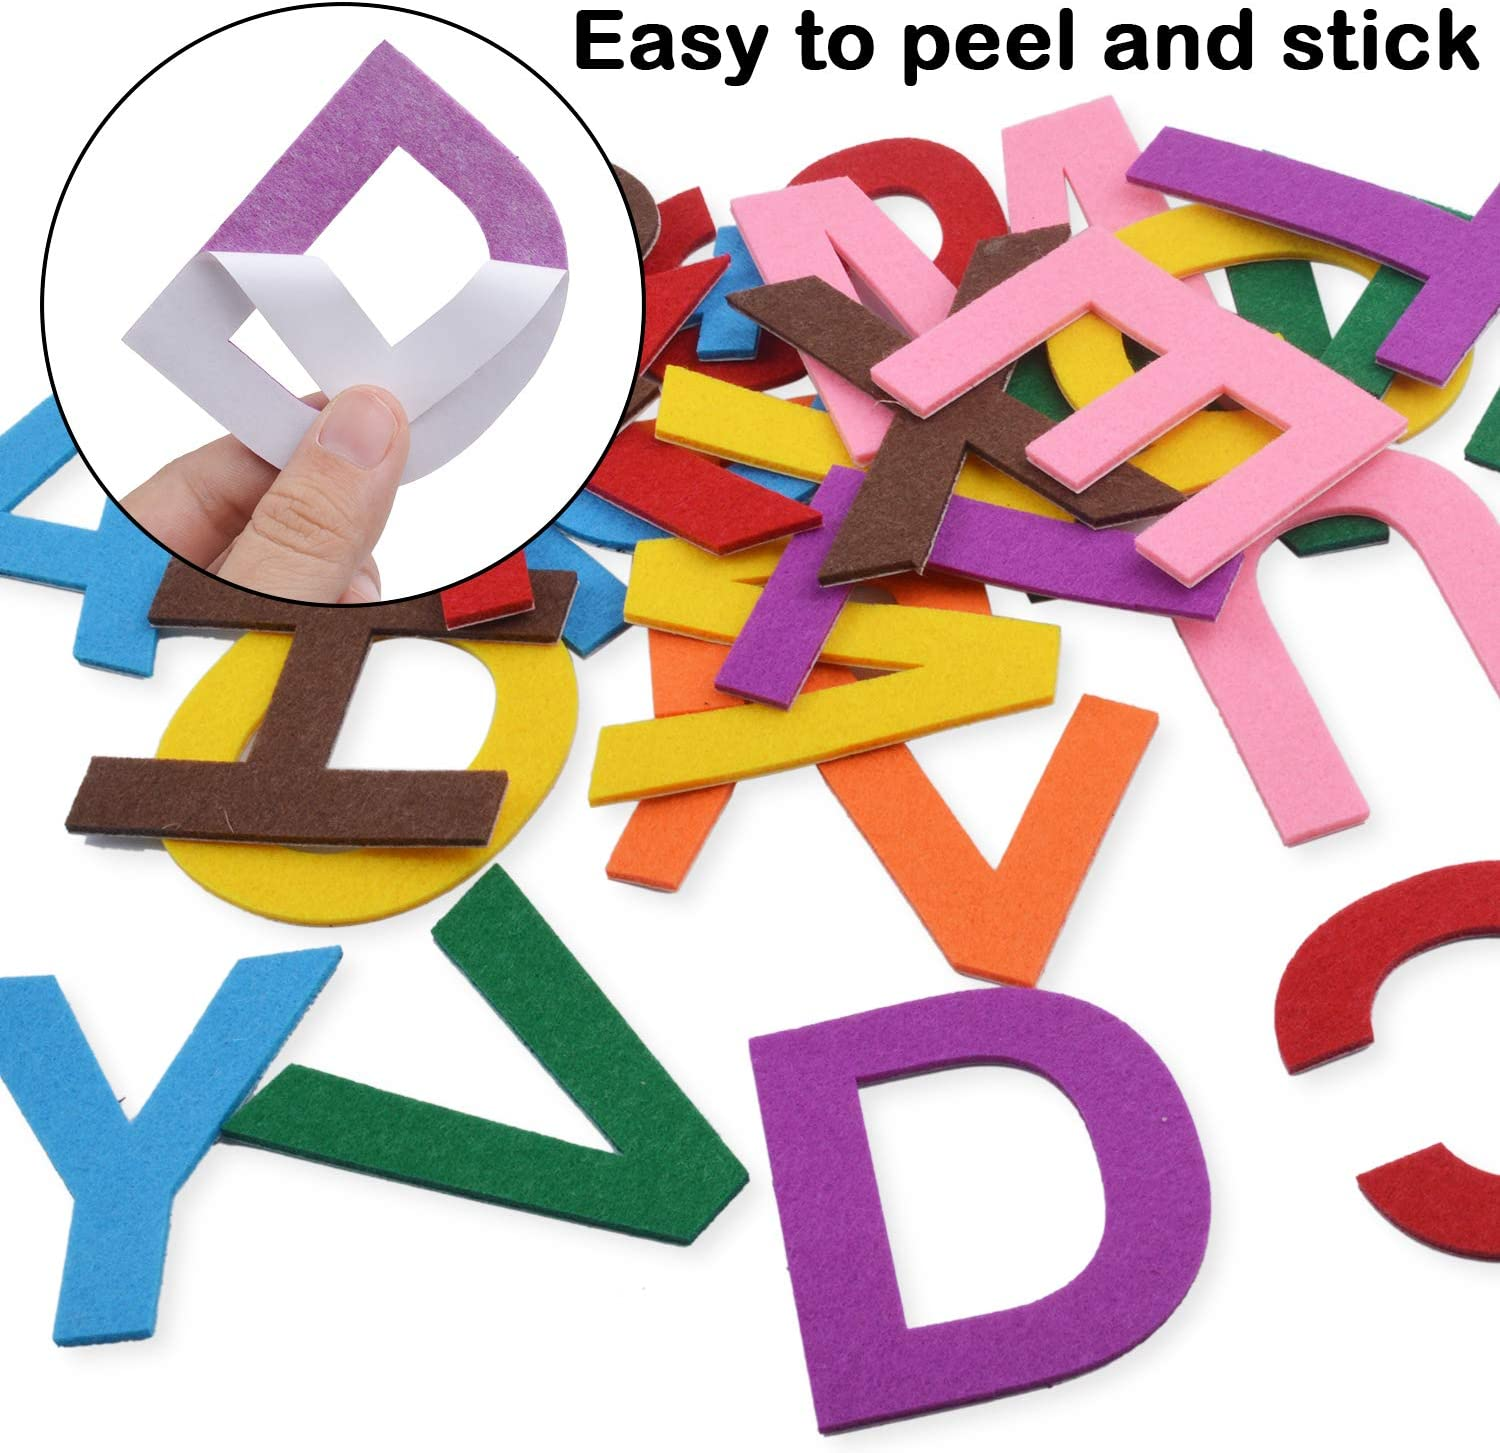 6.5cm Felt Letter Stickers 52 Pieces Self-Adhesive Foam Letters Felt Alphabet Stickers A-Z for Kids Decoration Arts and Crafts 8 Assorted Colors